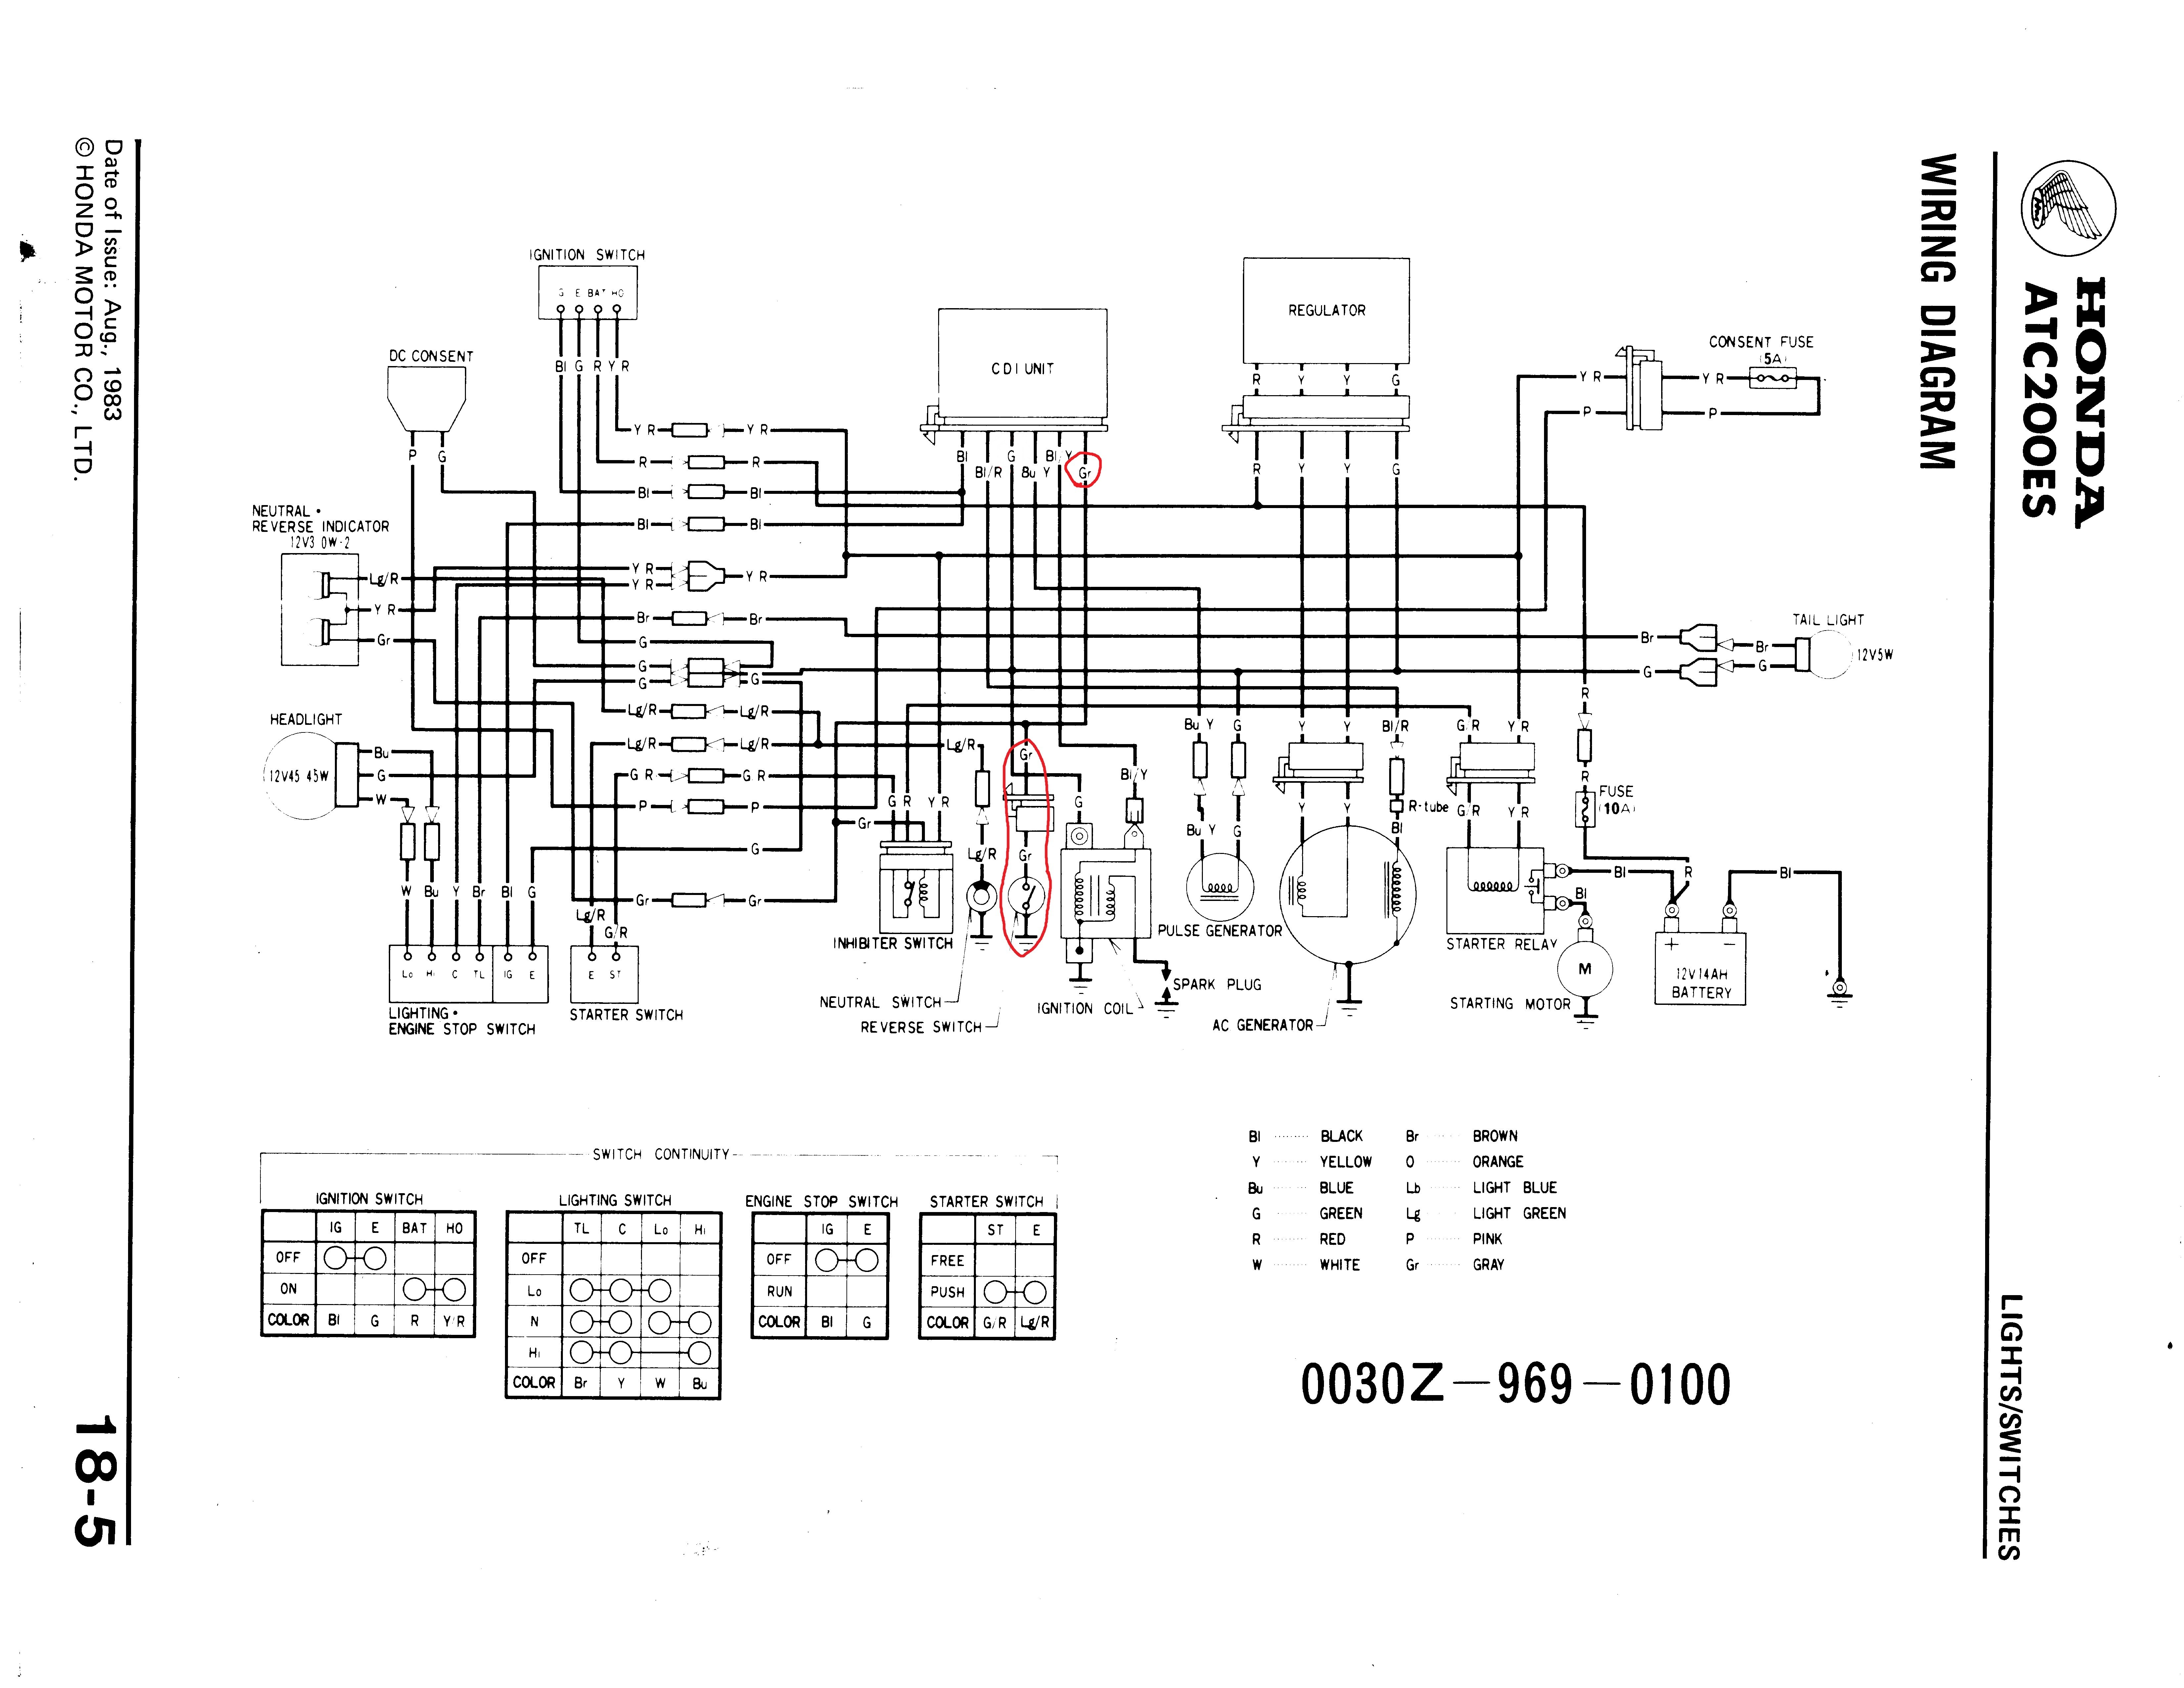 1989 Honda Trx 300 Wiring Diagram Free Picture - Wiring Diagram Replace  solution-display - solution-display.miramontiseo.it | Trx 300 Fourtrax Wiring Diagram For |  | solution-display.miramontiseo.it